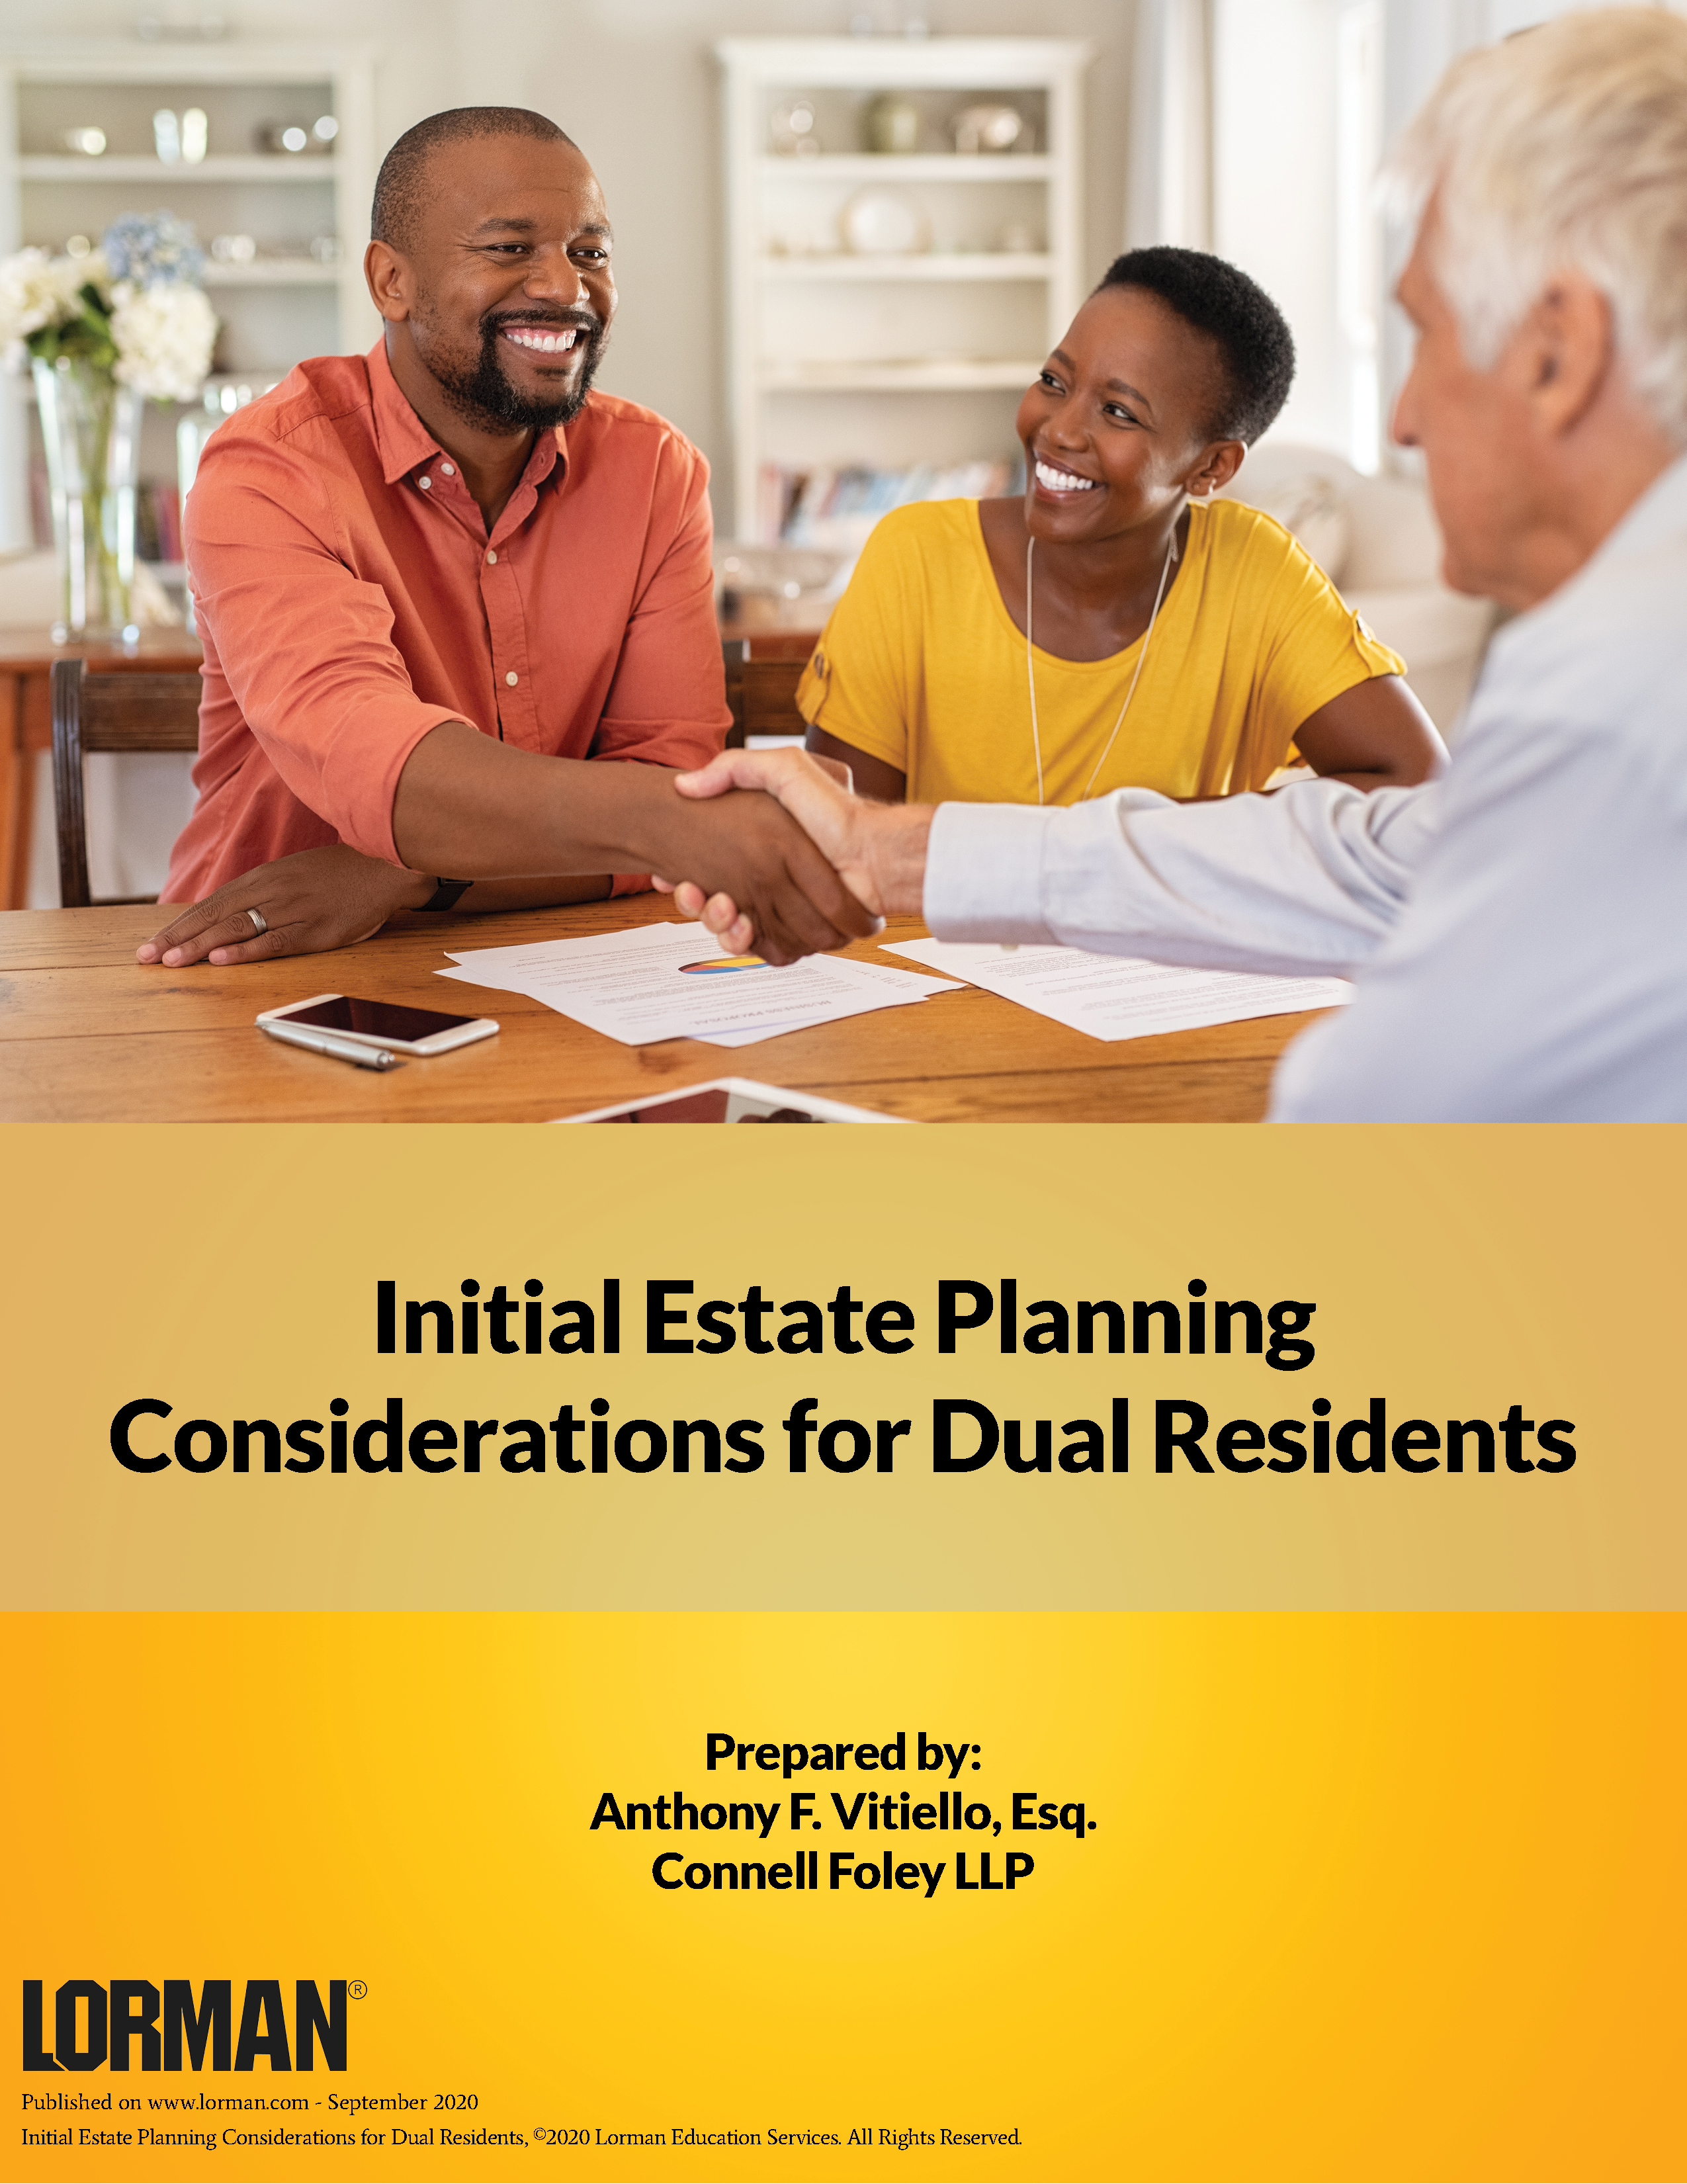 Initial Estate Planning Considerations for Dual Residents